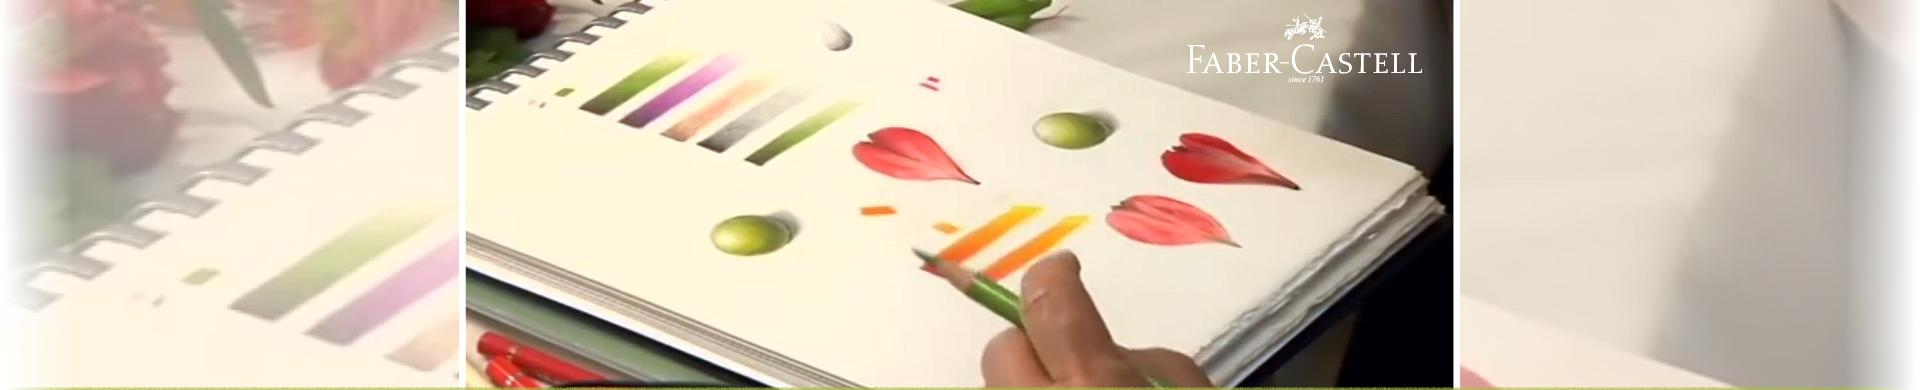 Tips for Colouring with Faber-Castell Polychromos Pencils